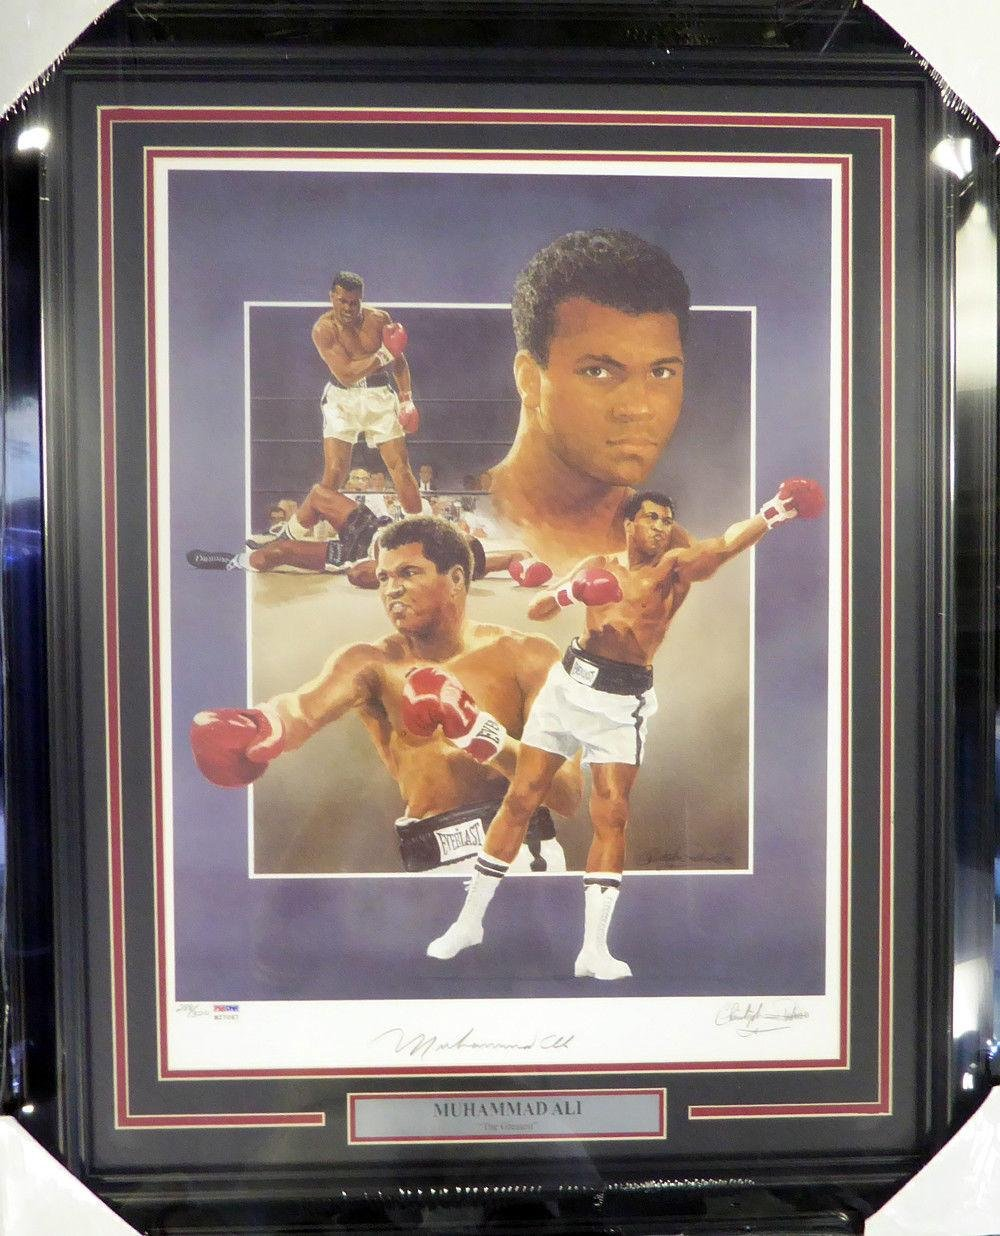 Muhammad Ali Autographed Framed 18x24 Lithograph Photo Auto Grade 10 B27067 PSA/DNA Certified Autographed Boxing Art